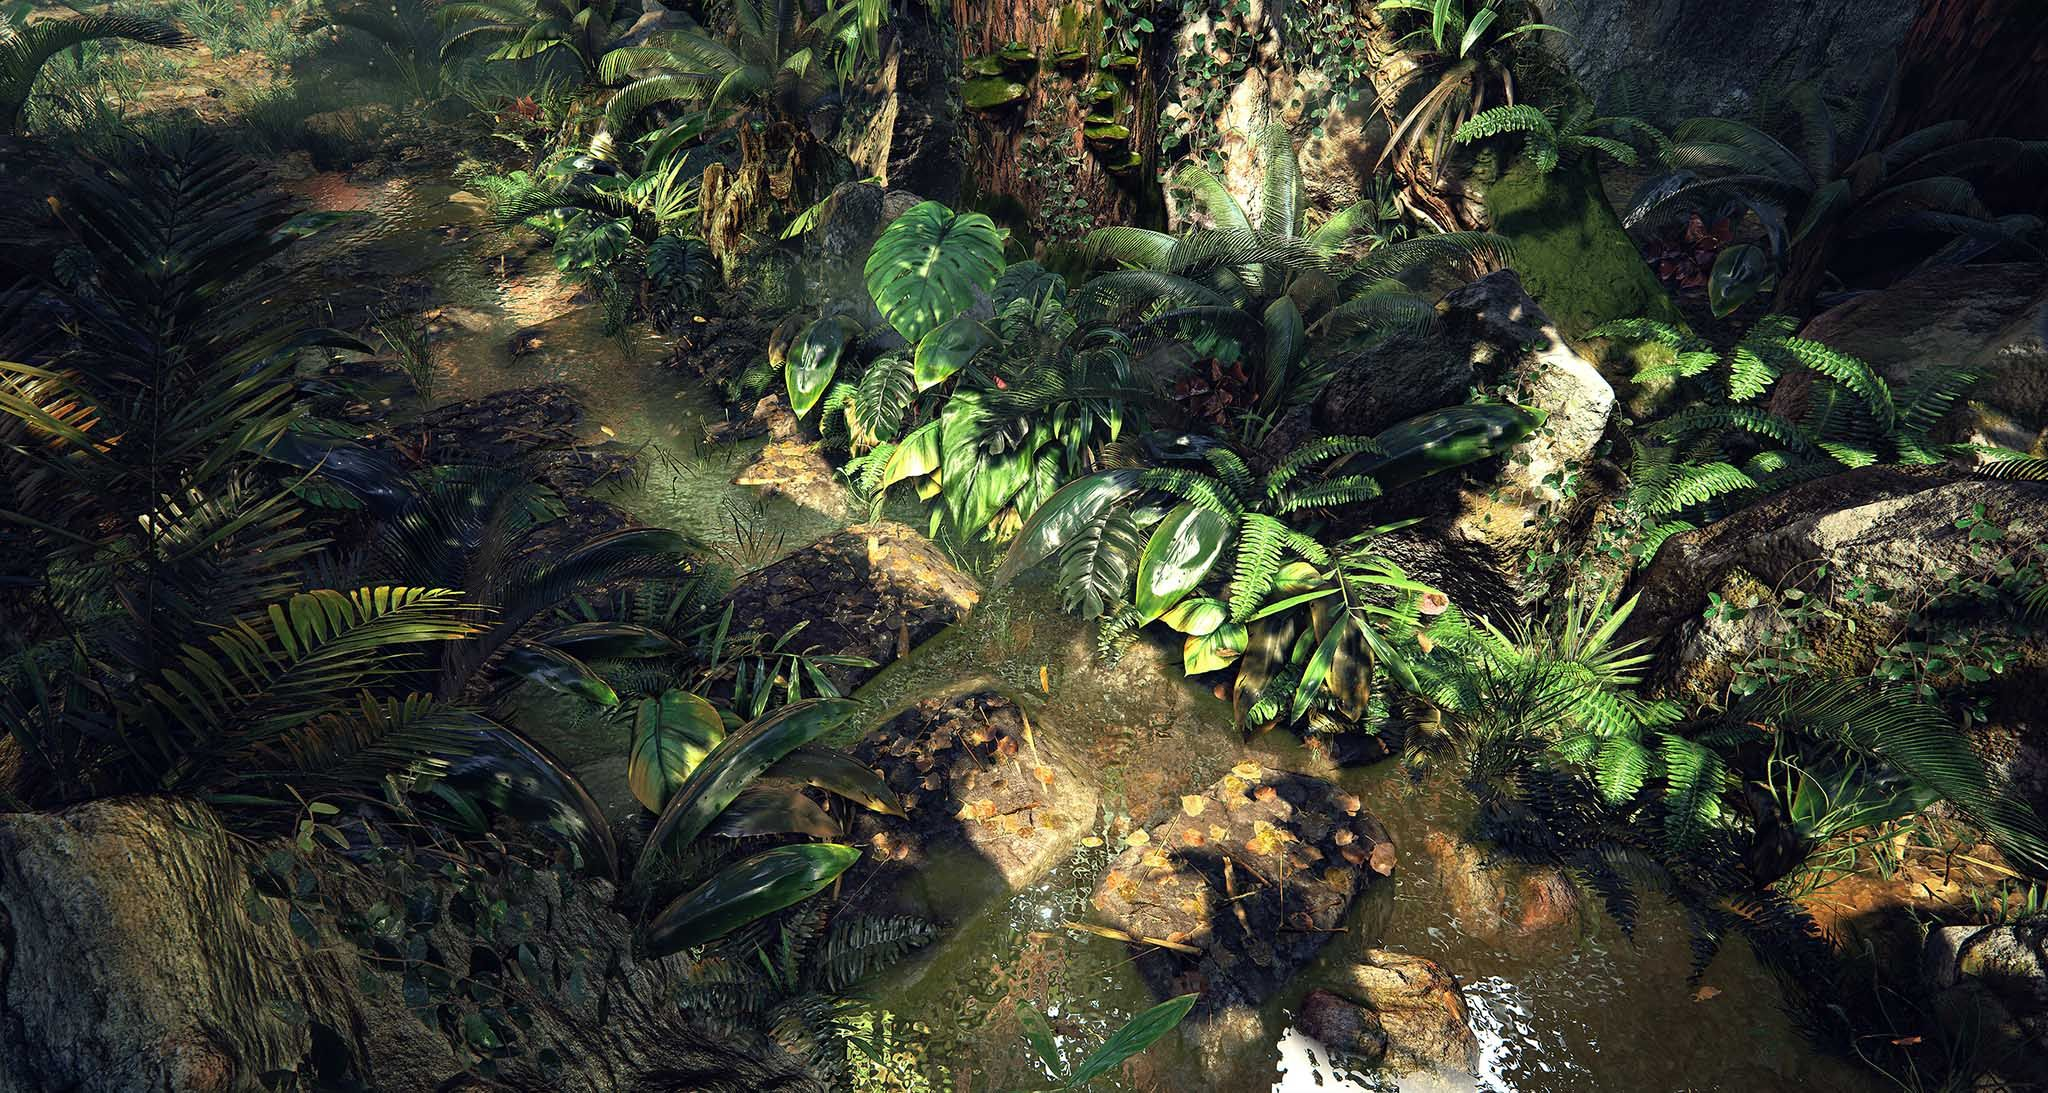 Pin by Virraizly Zan on Environment Showcase | Nature 3d